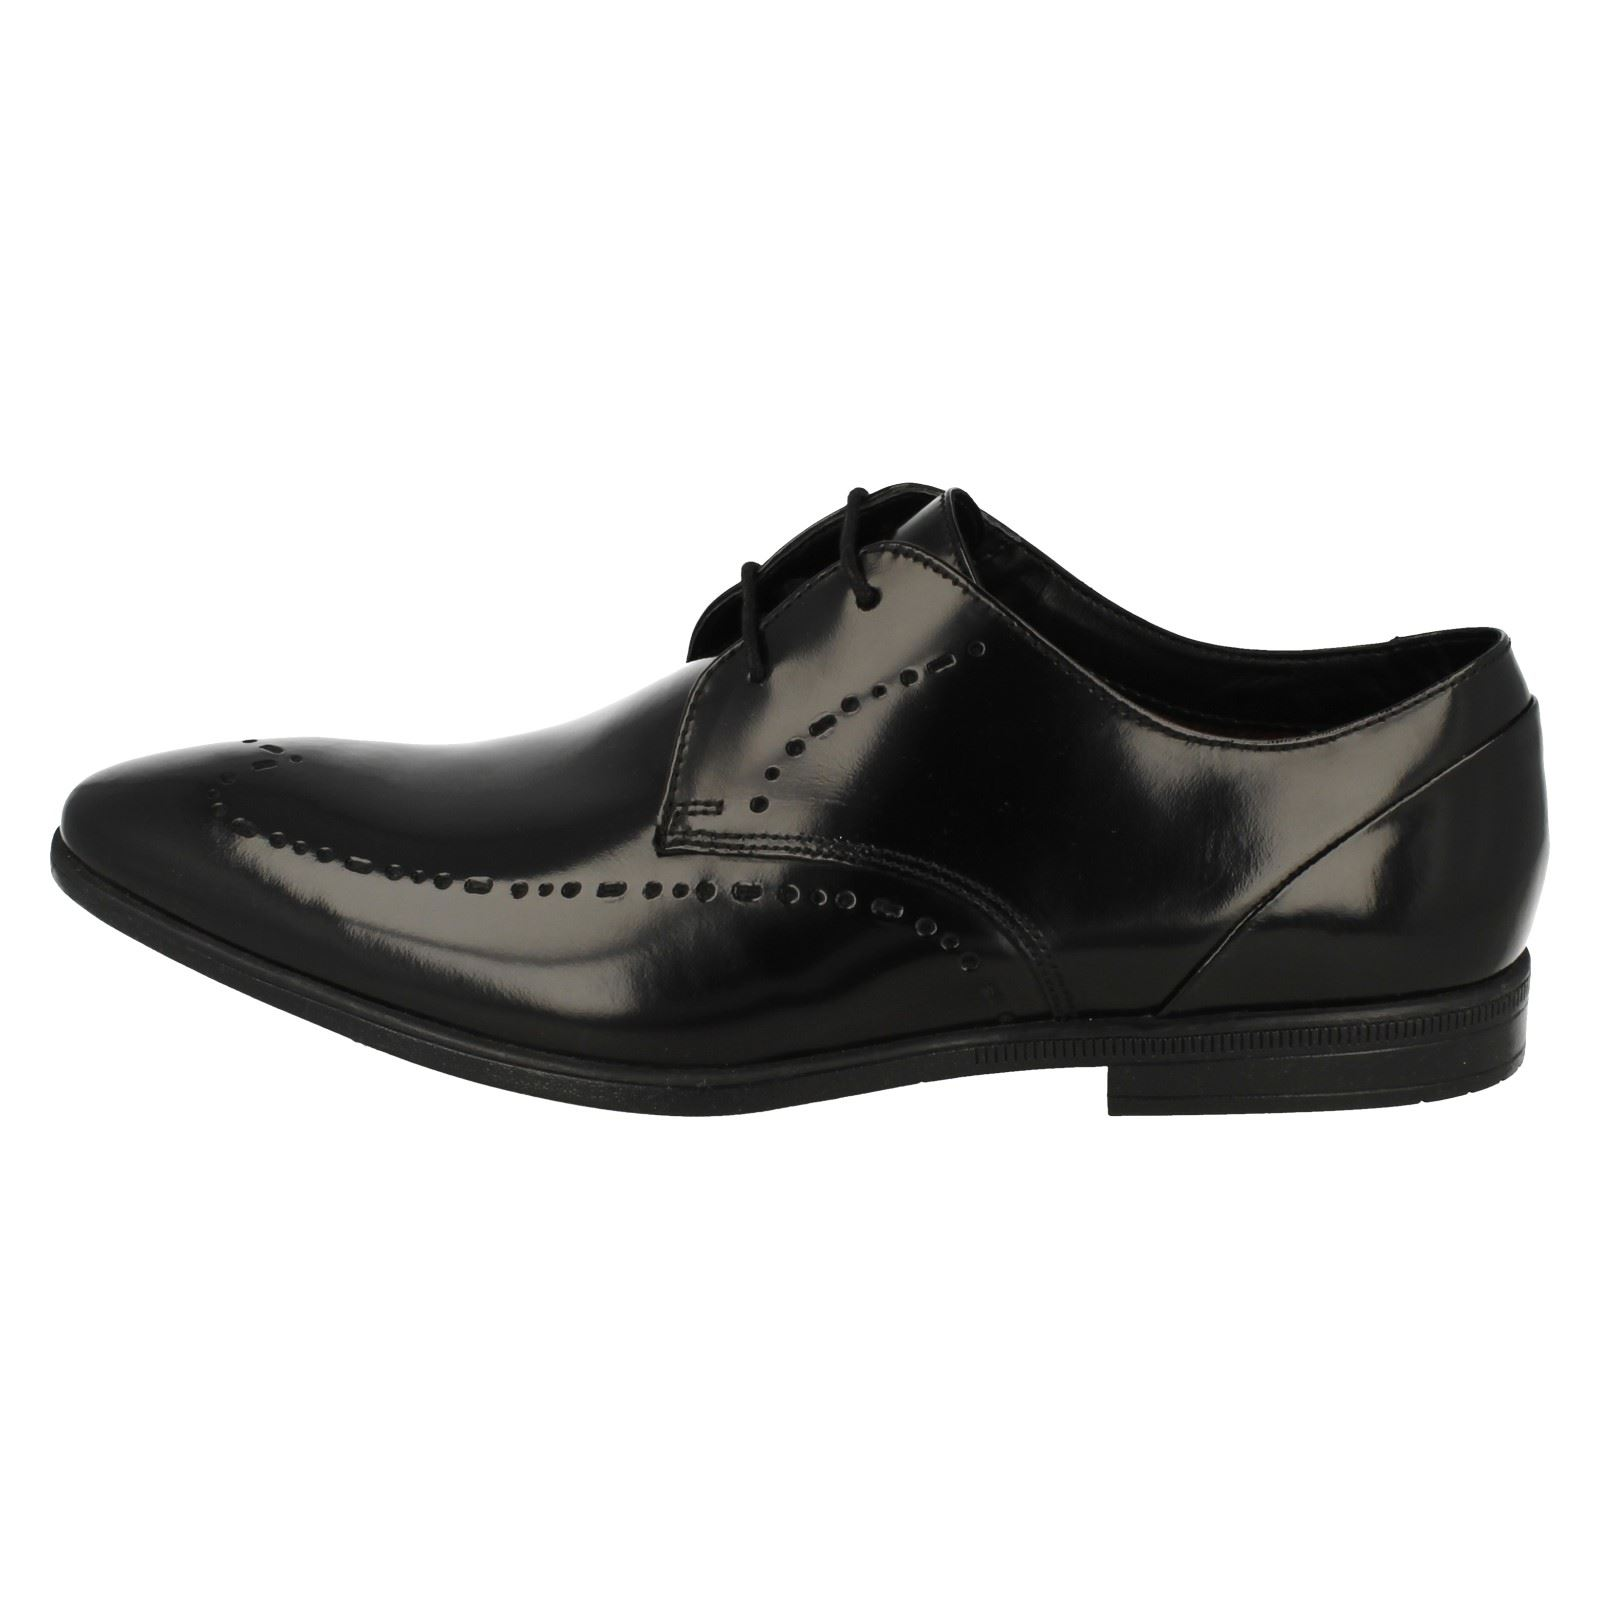 Uomo Clarks Schuhes Smart Lace Up Schuhes Clarks Bampton Limit 1bfb4c